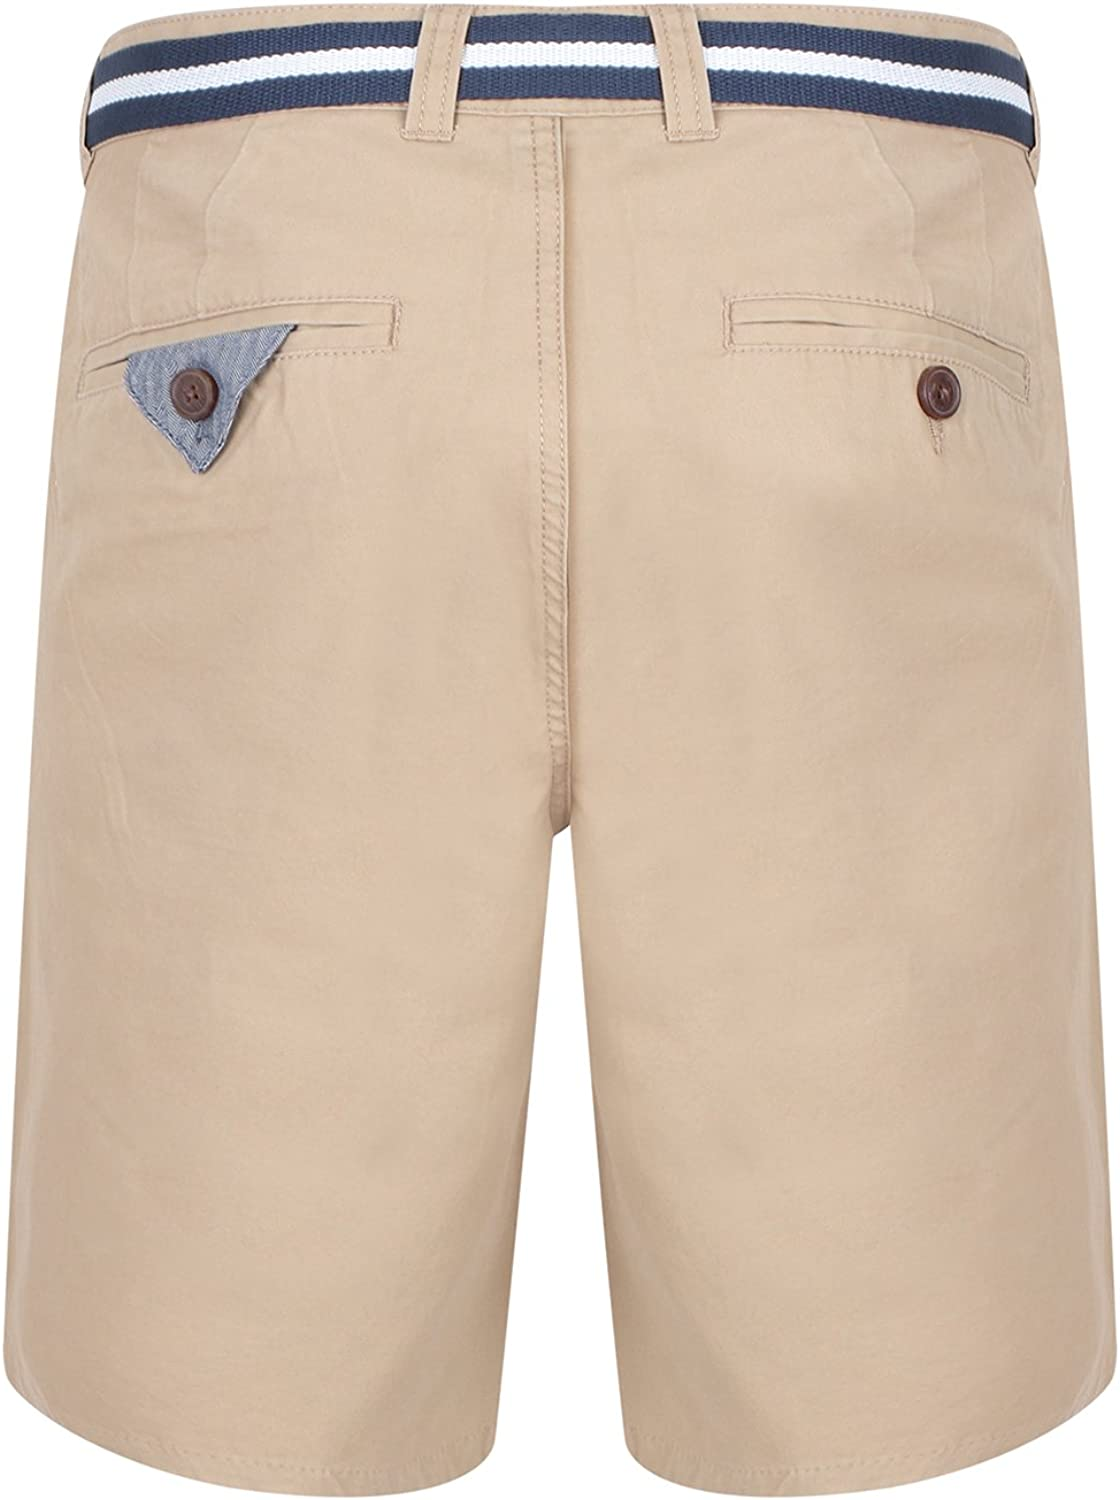 Mens Chino Shorts by Tokyo Laundry /'Crater/' With Belt